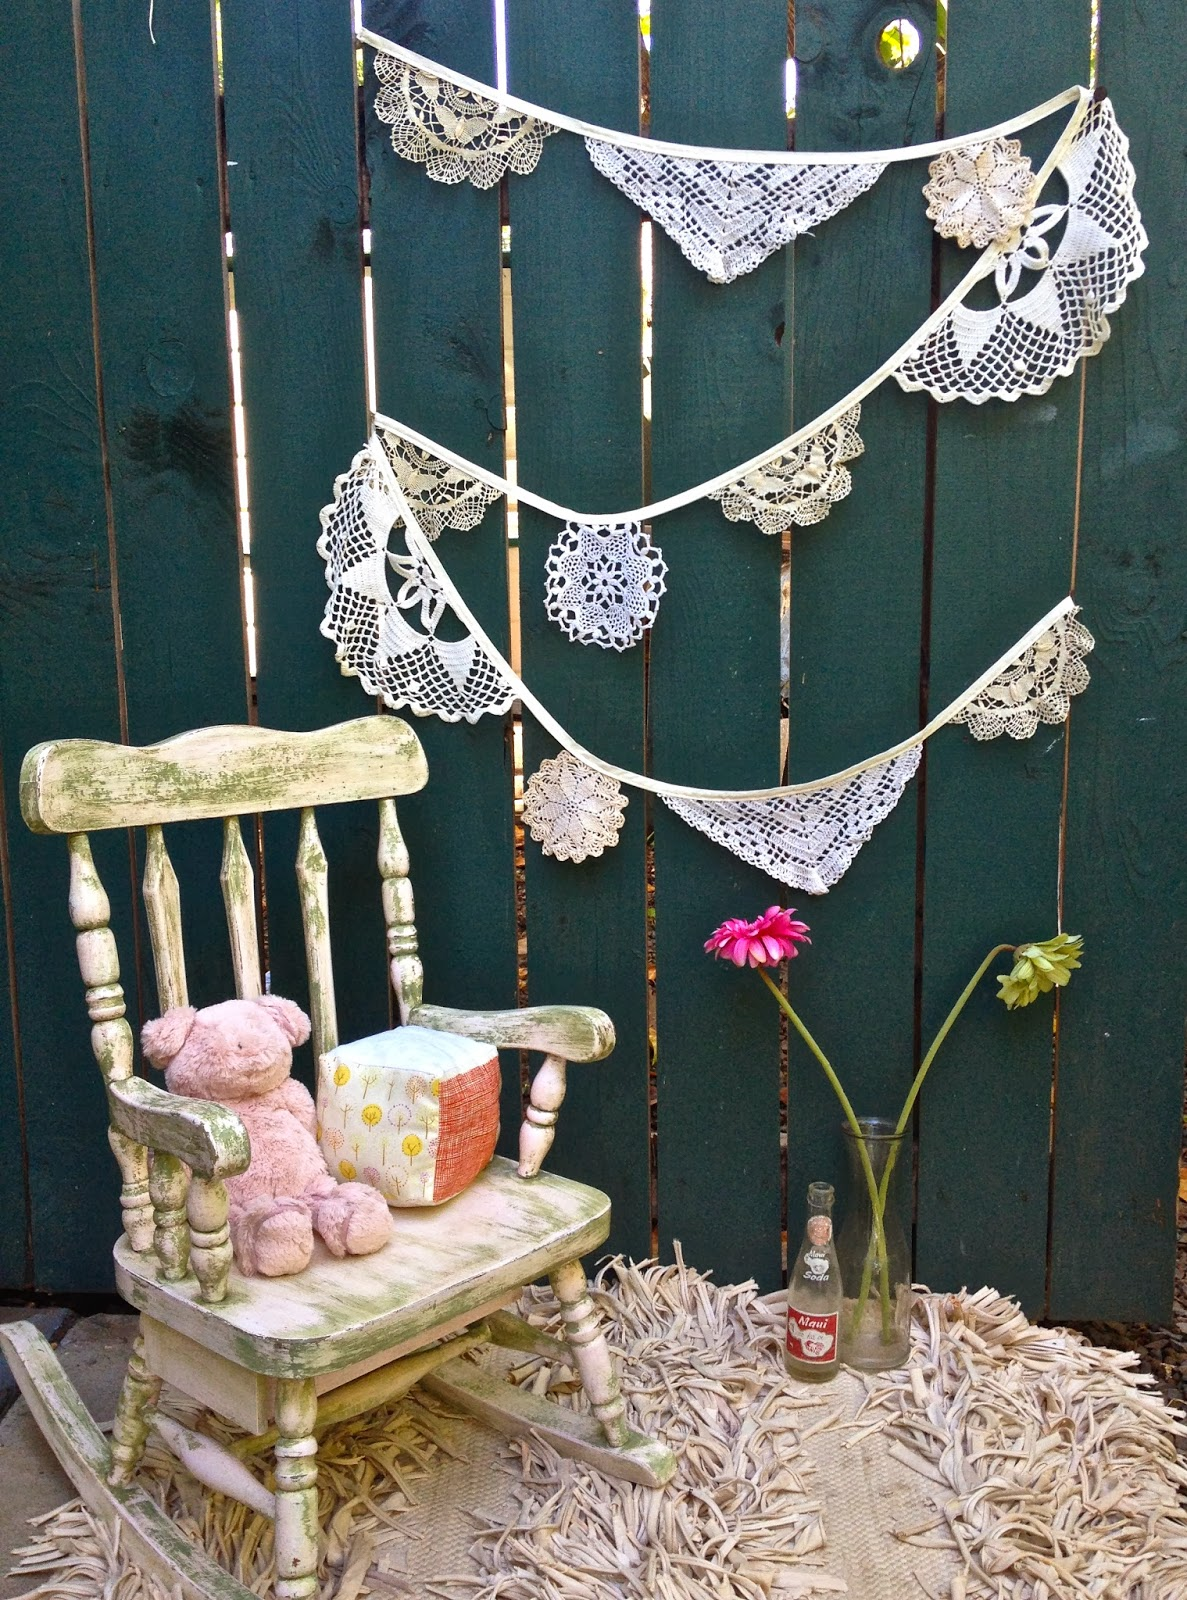 bunting doily rocking chair pig soft block flowers on a fence